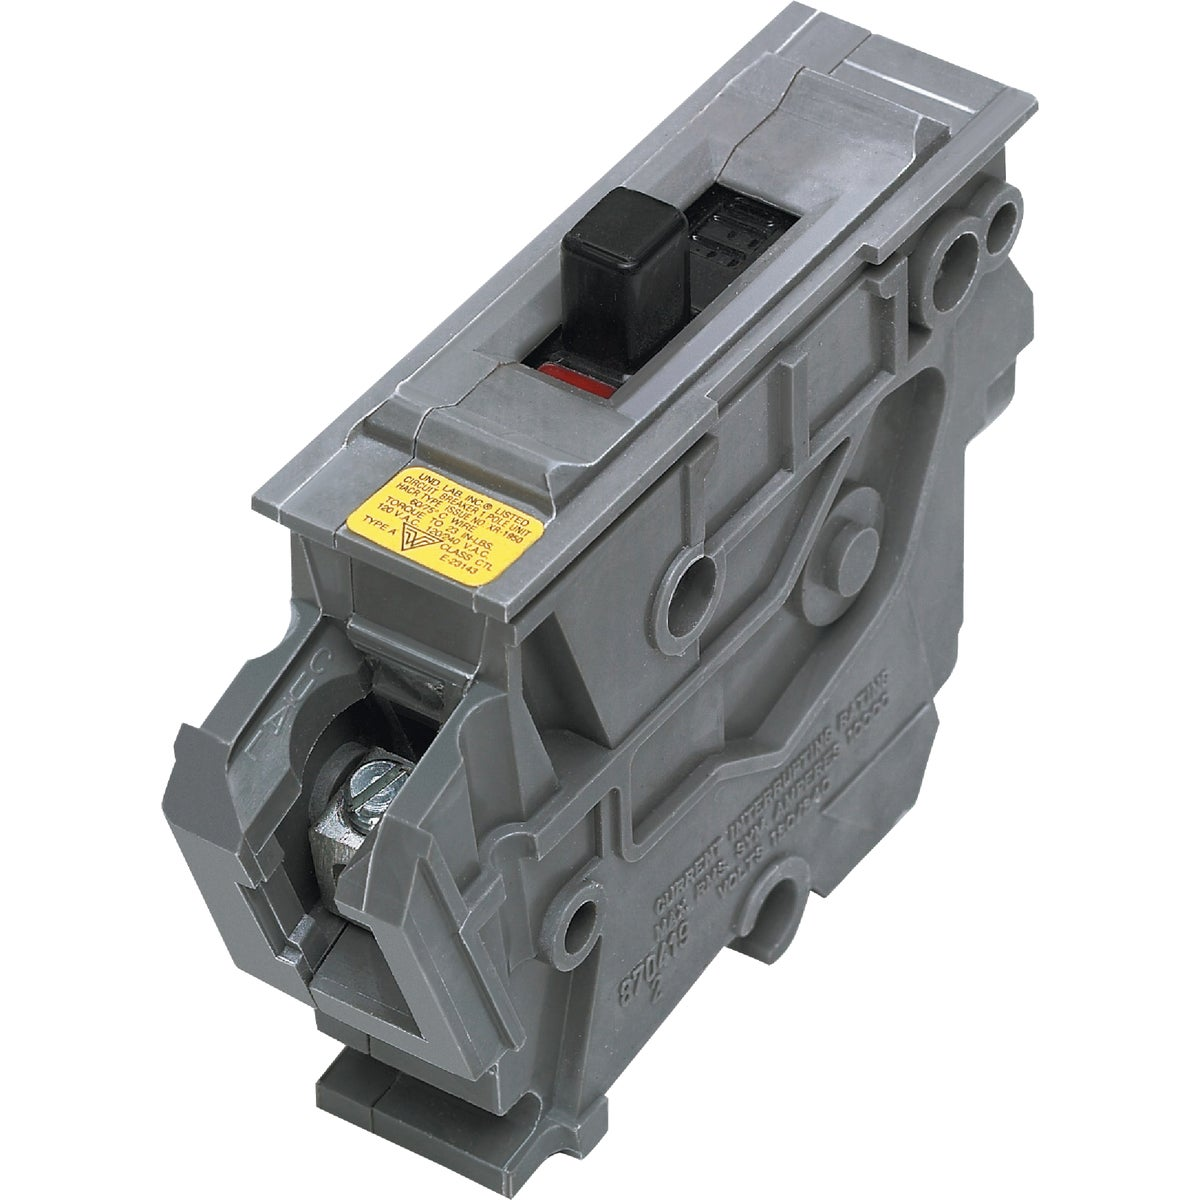 15A SP CIRCUIT BREAKER - WA15 by Connecticut Electric